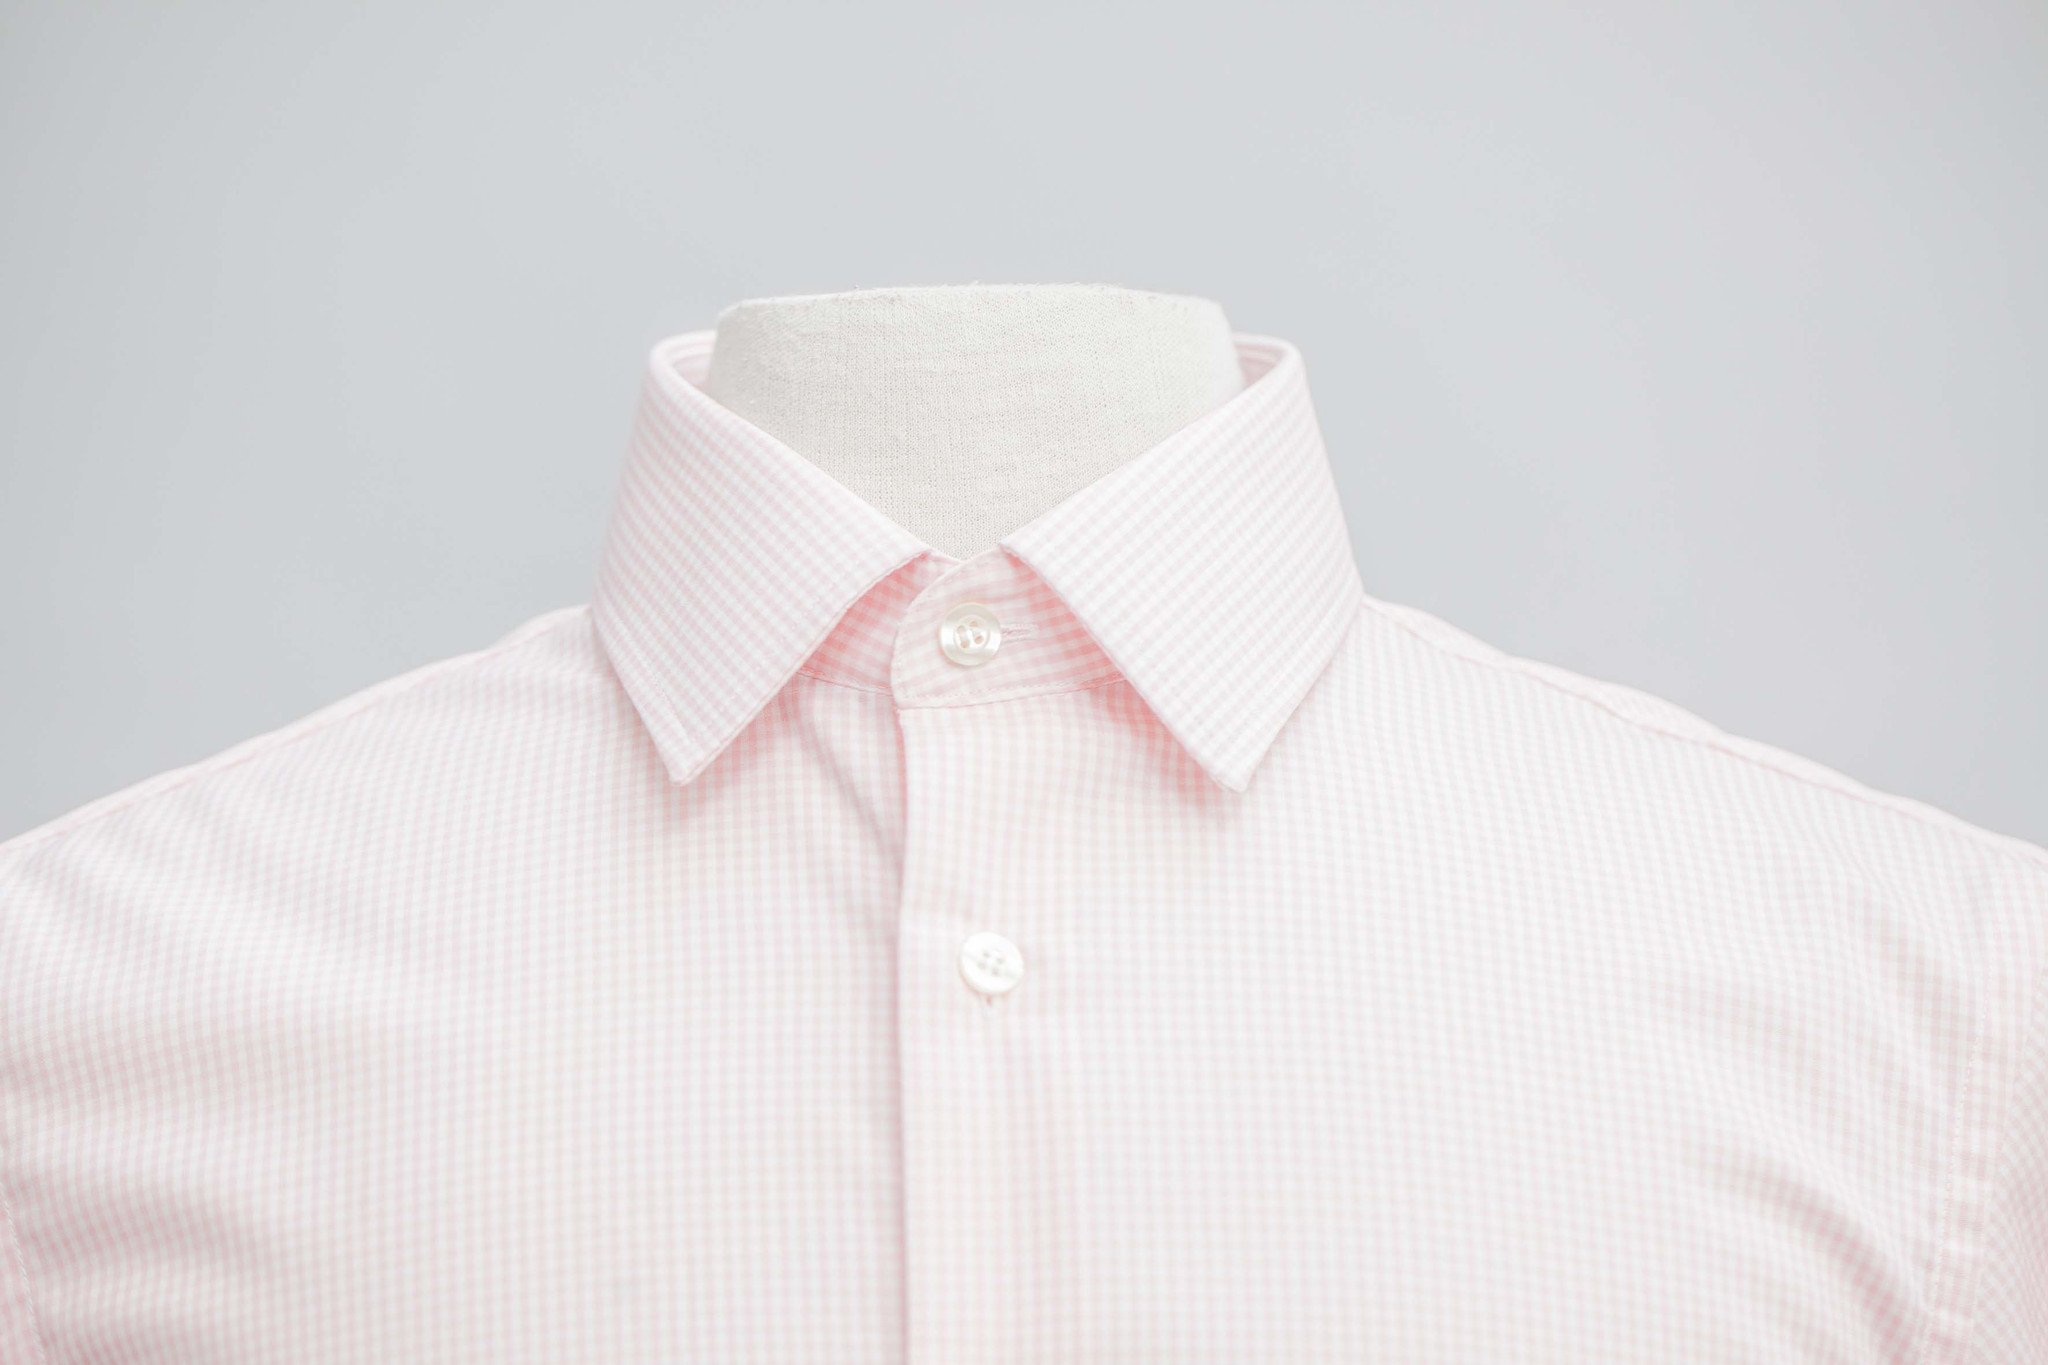 Smyth & Gibson Non-Iron Gingham Check Slim Fit Shirt in Pink